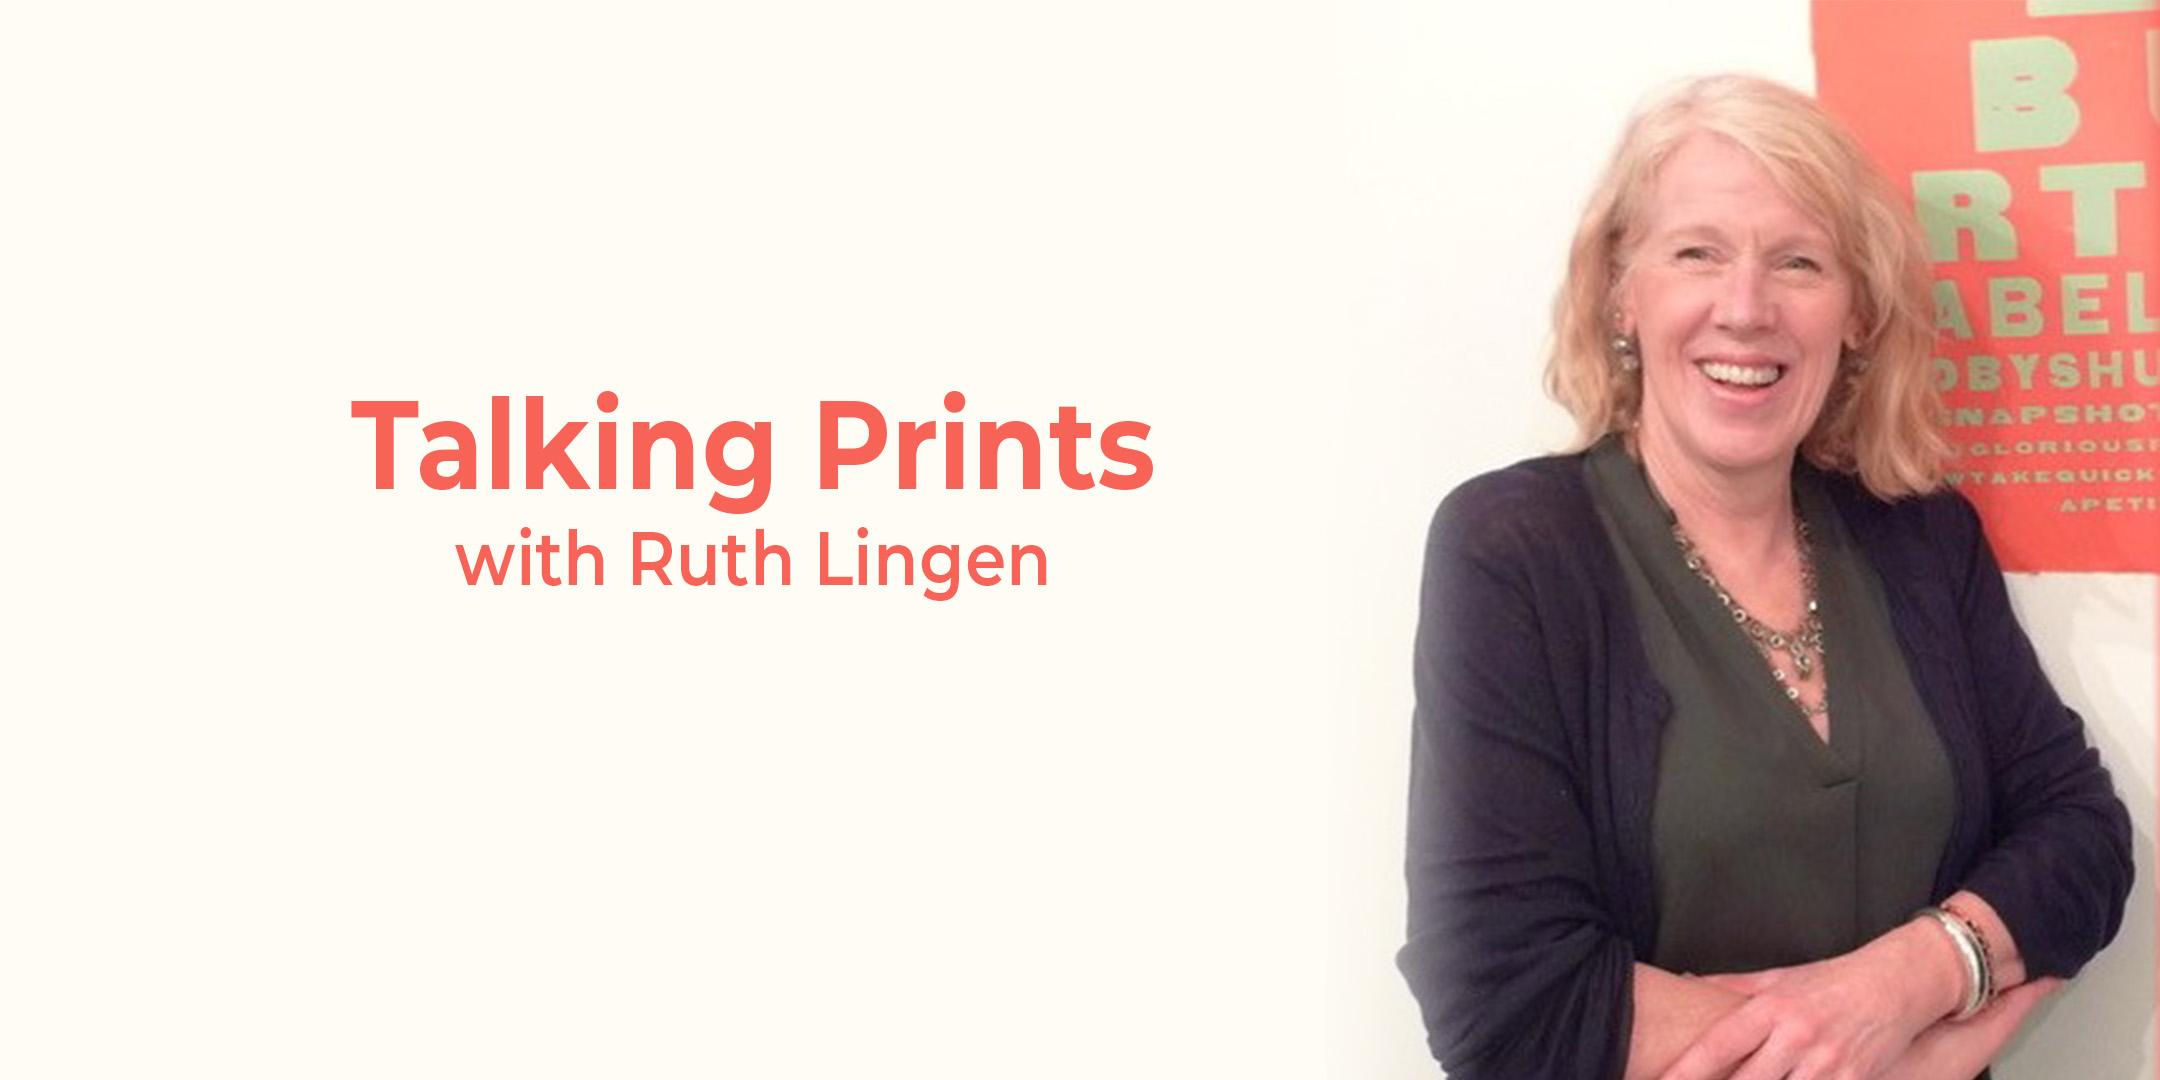 Talking Prints with Ruth Lingen